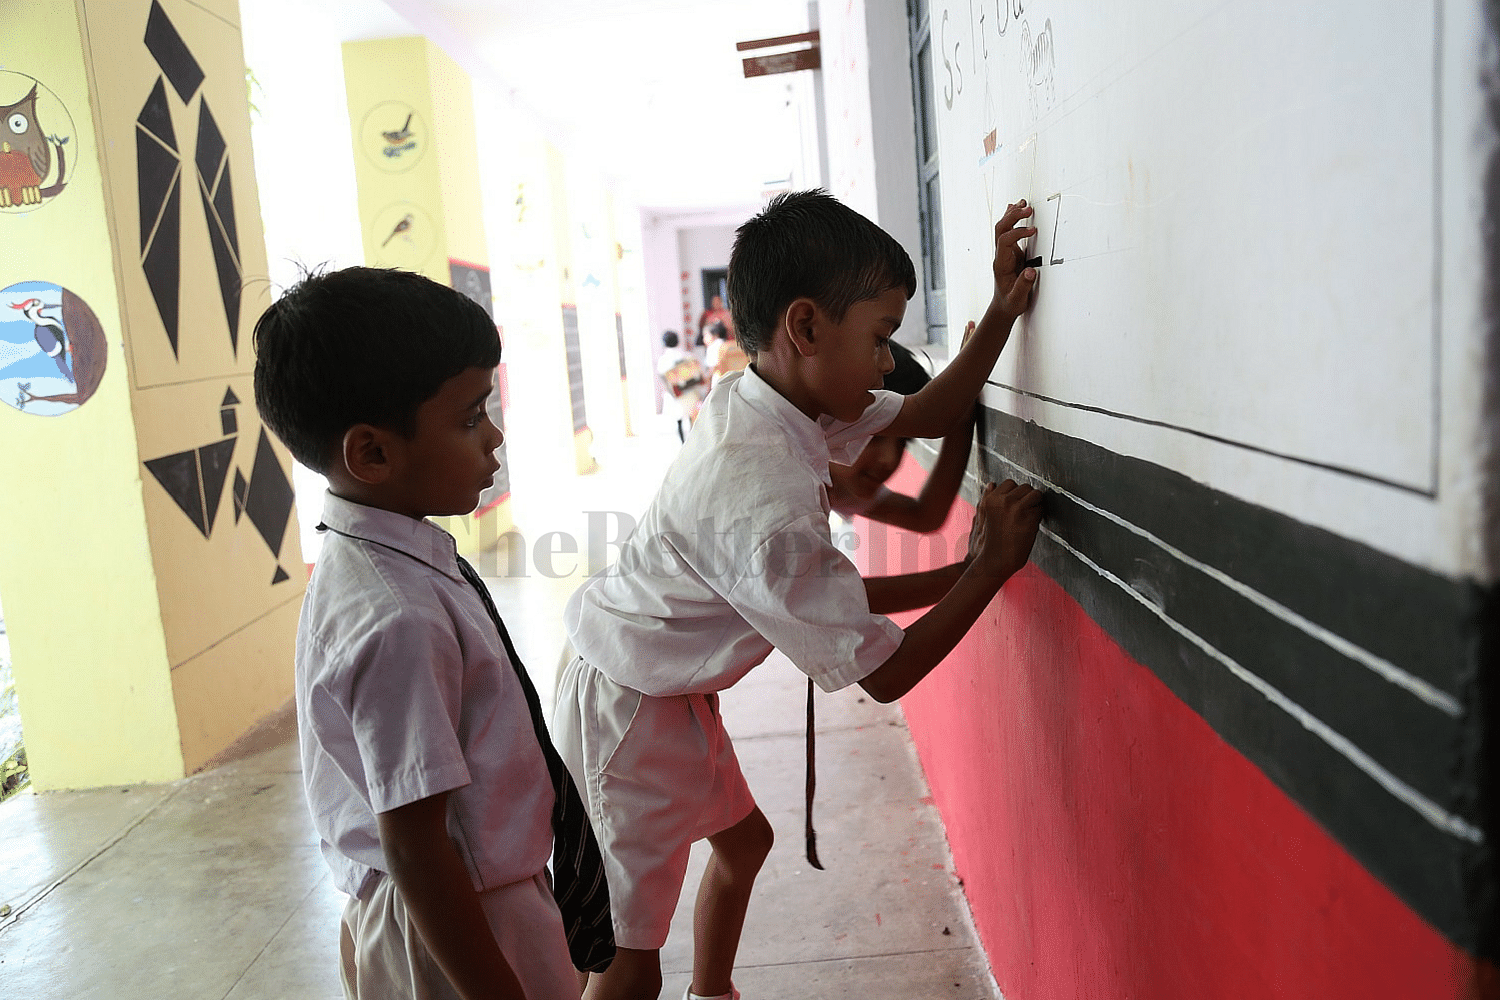 Writing on the walls is very much allowed!